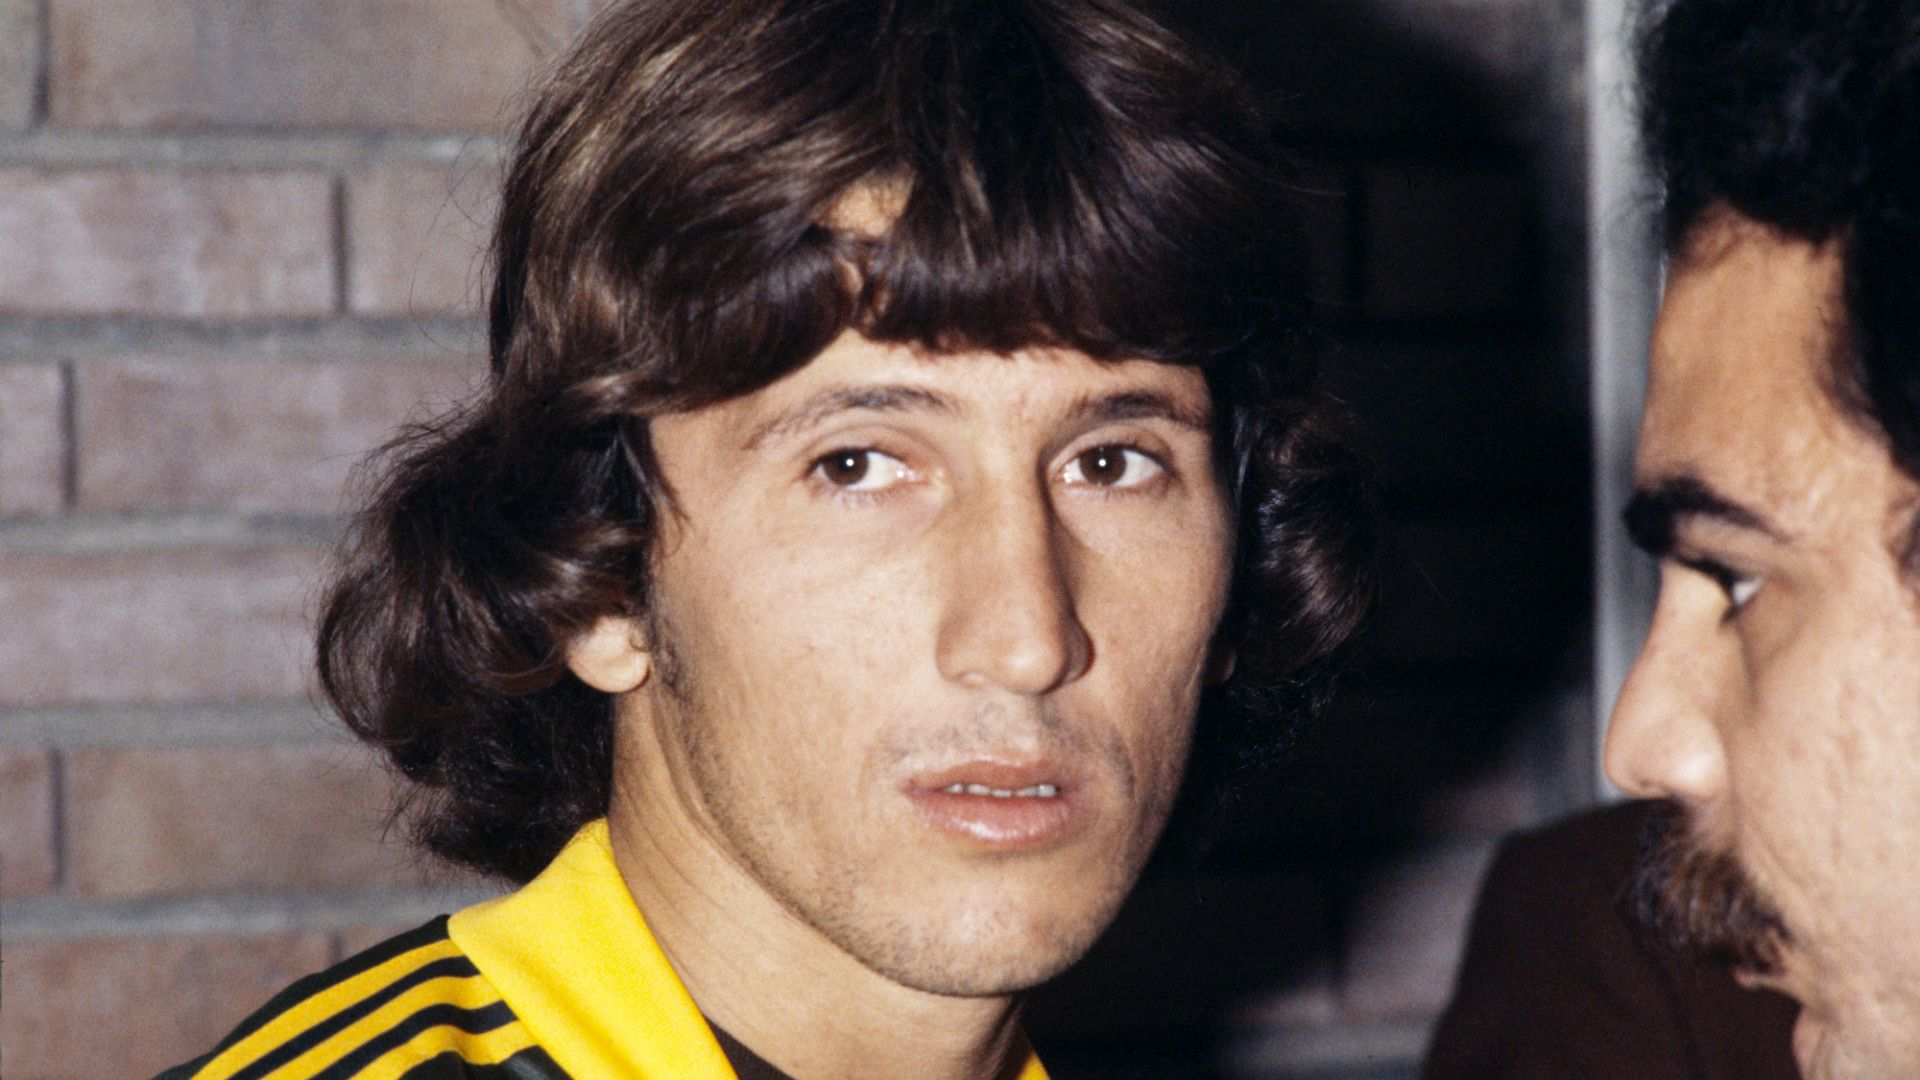 Flamengo and Brazil midfielder Zico pictured in 1978.